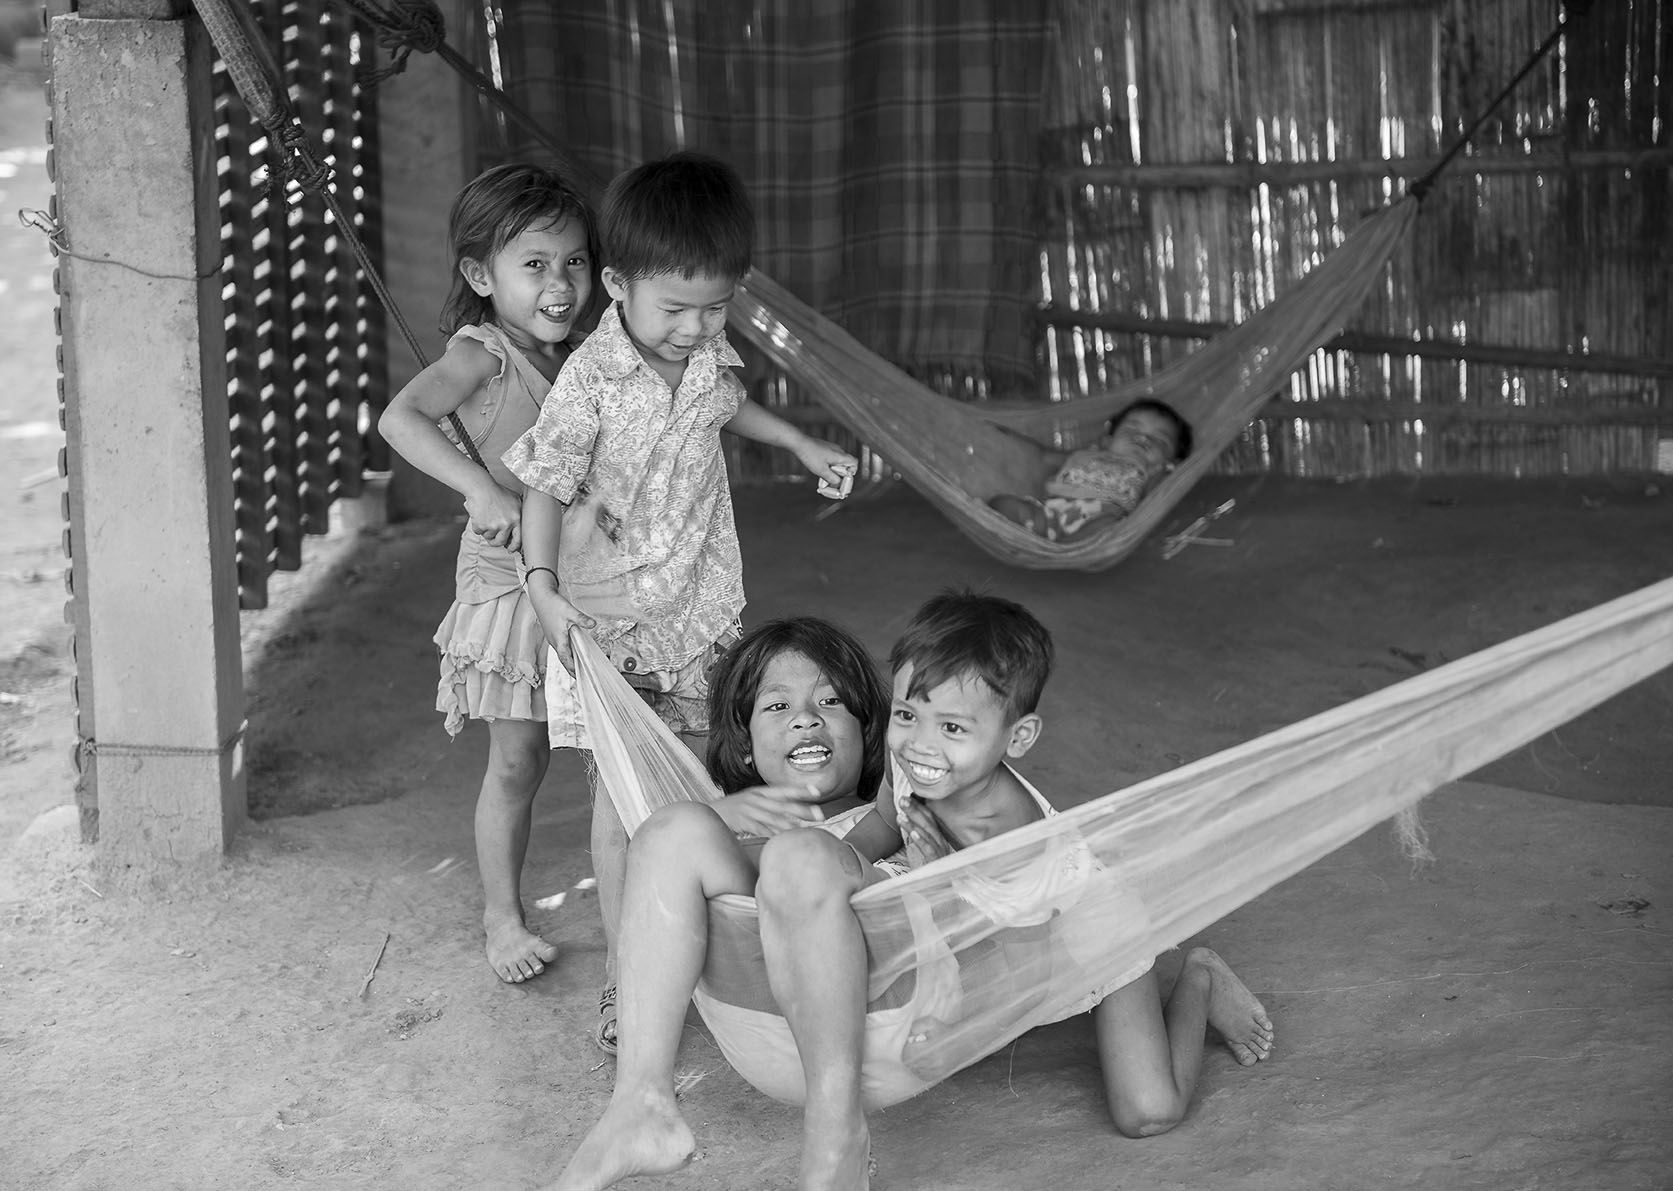 This children was playing in hammocks under their house, the family was of to work in a factory and grandmother was looking after them.